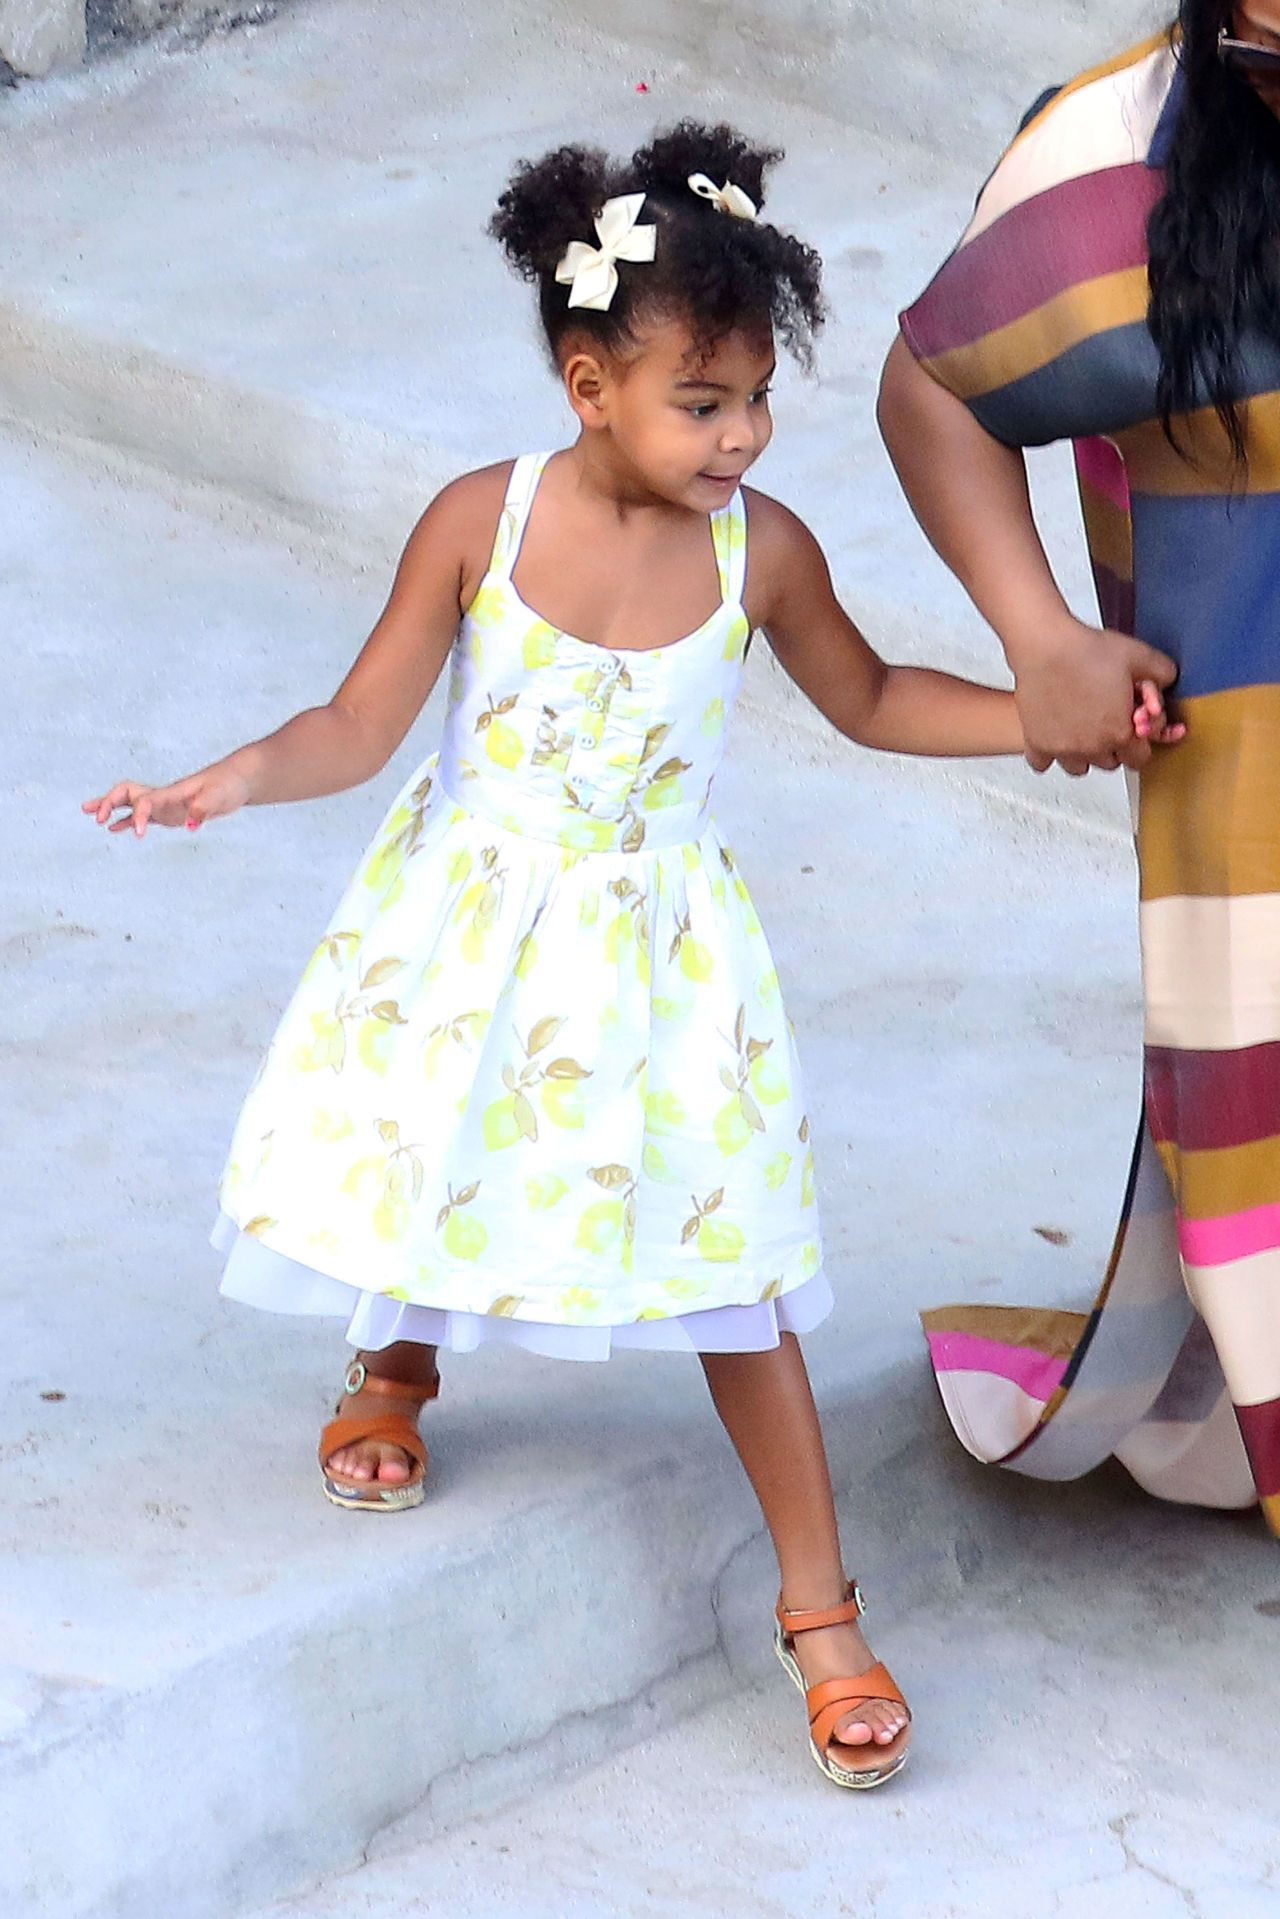 943d606a5 Blue Ivy Carter Is Having Her Own Private Fashion Show | Celebrity ...